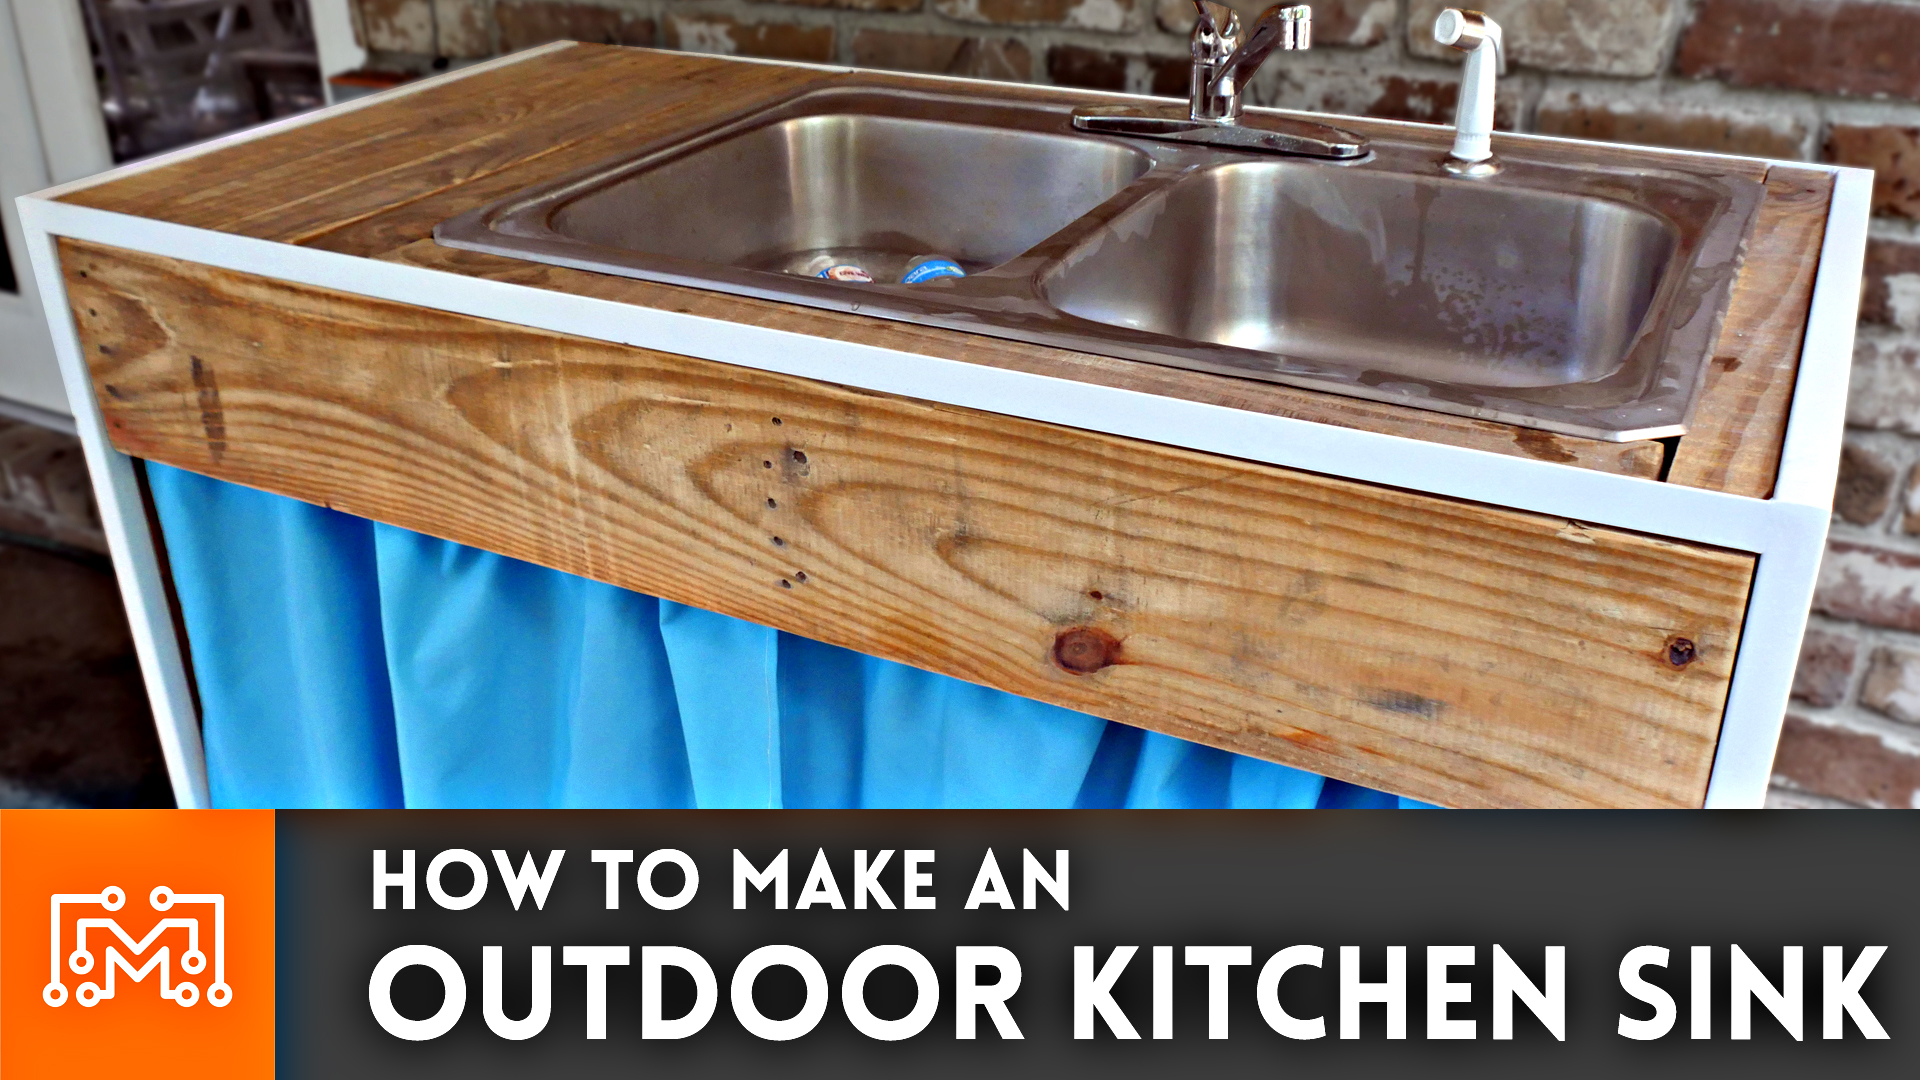 How To Make An Outdoor Kitchen Sink I Like To Make Stuff